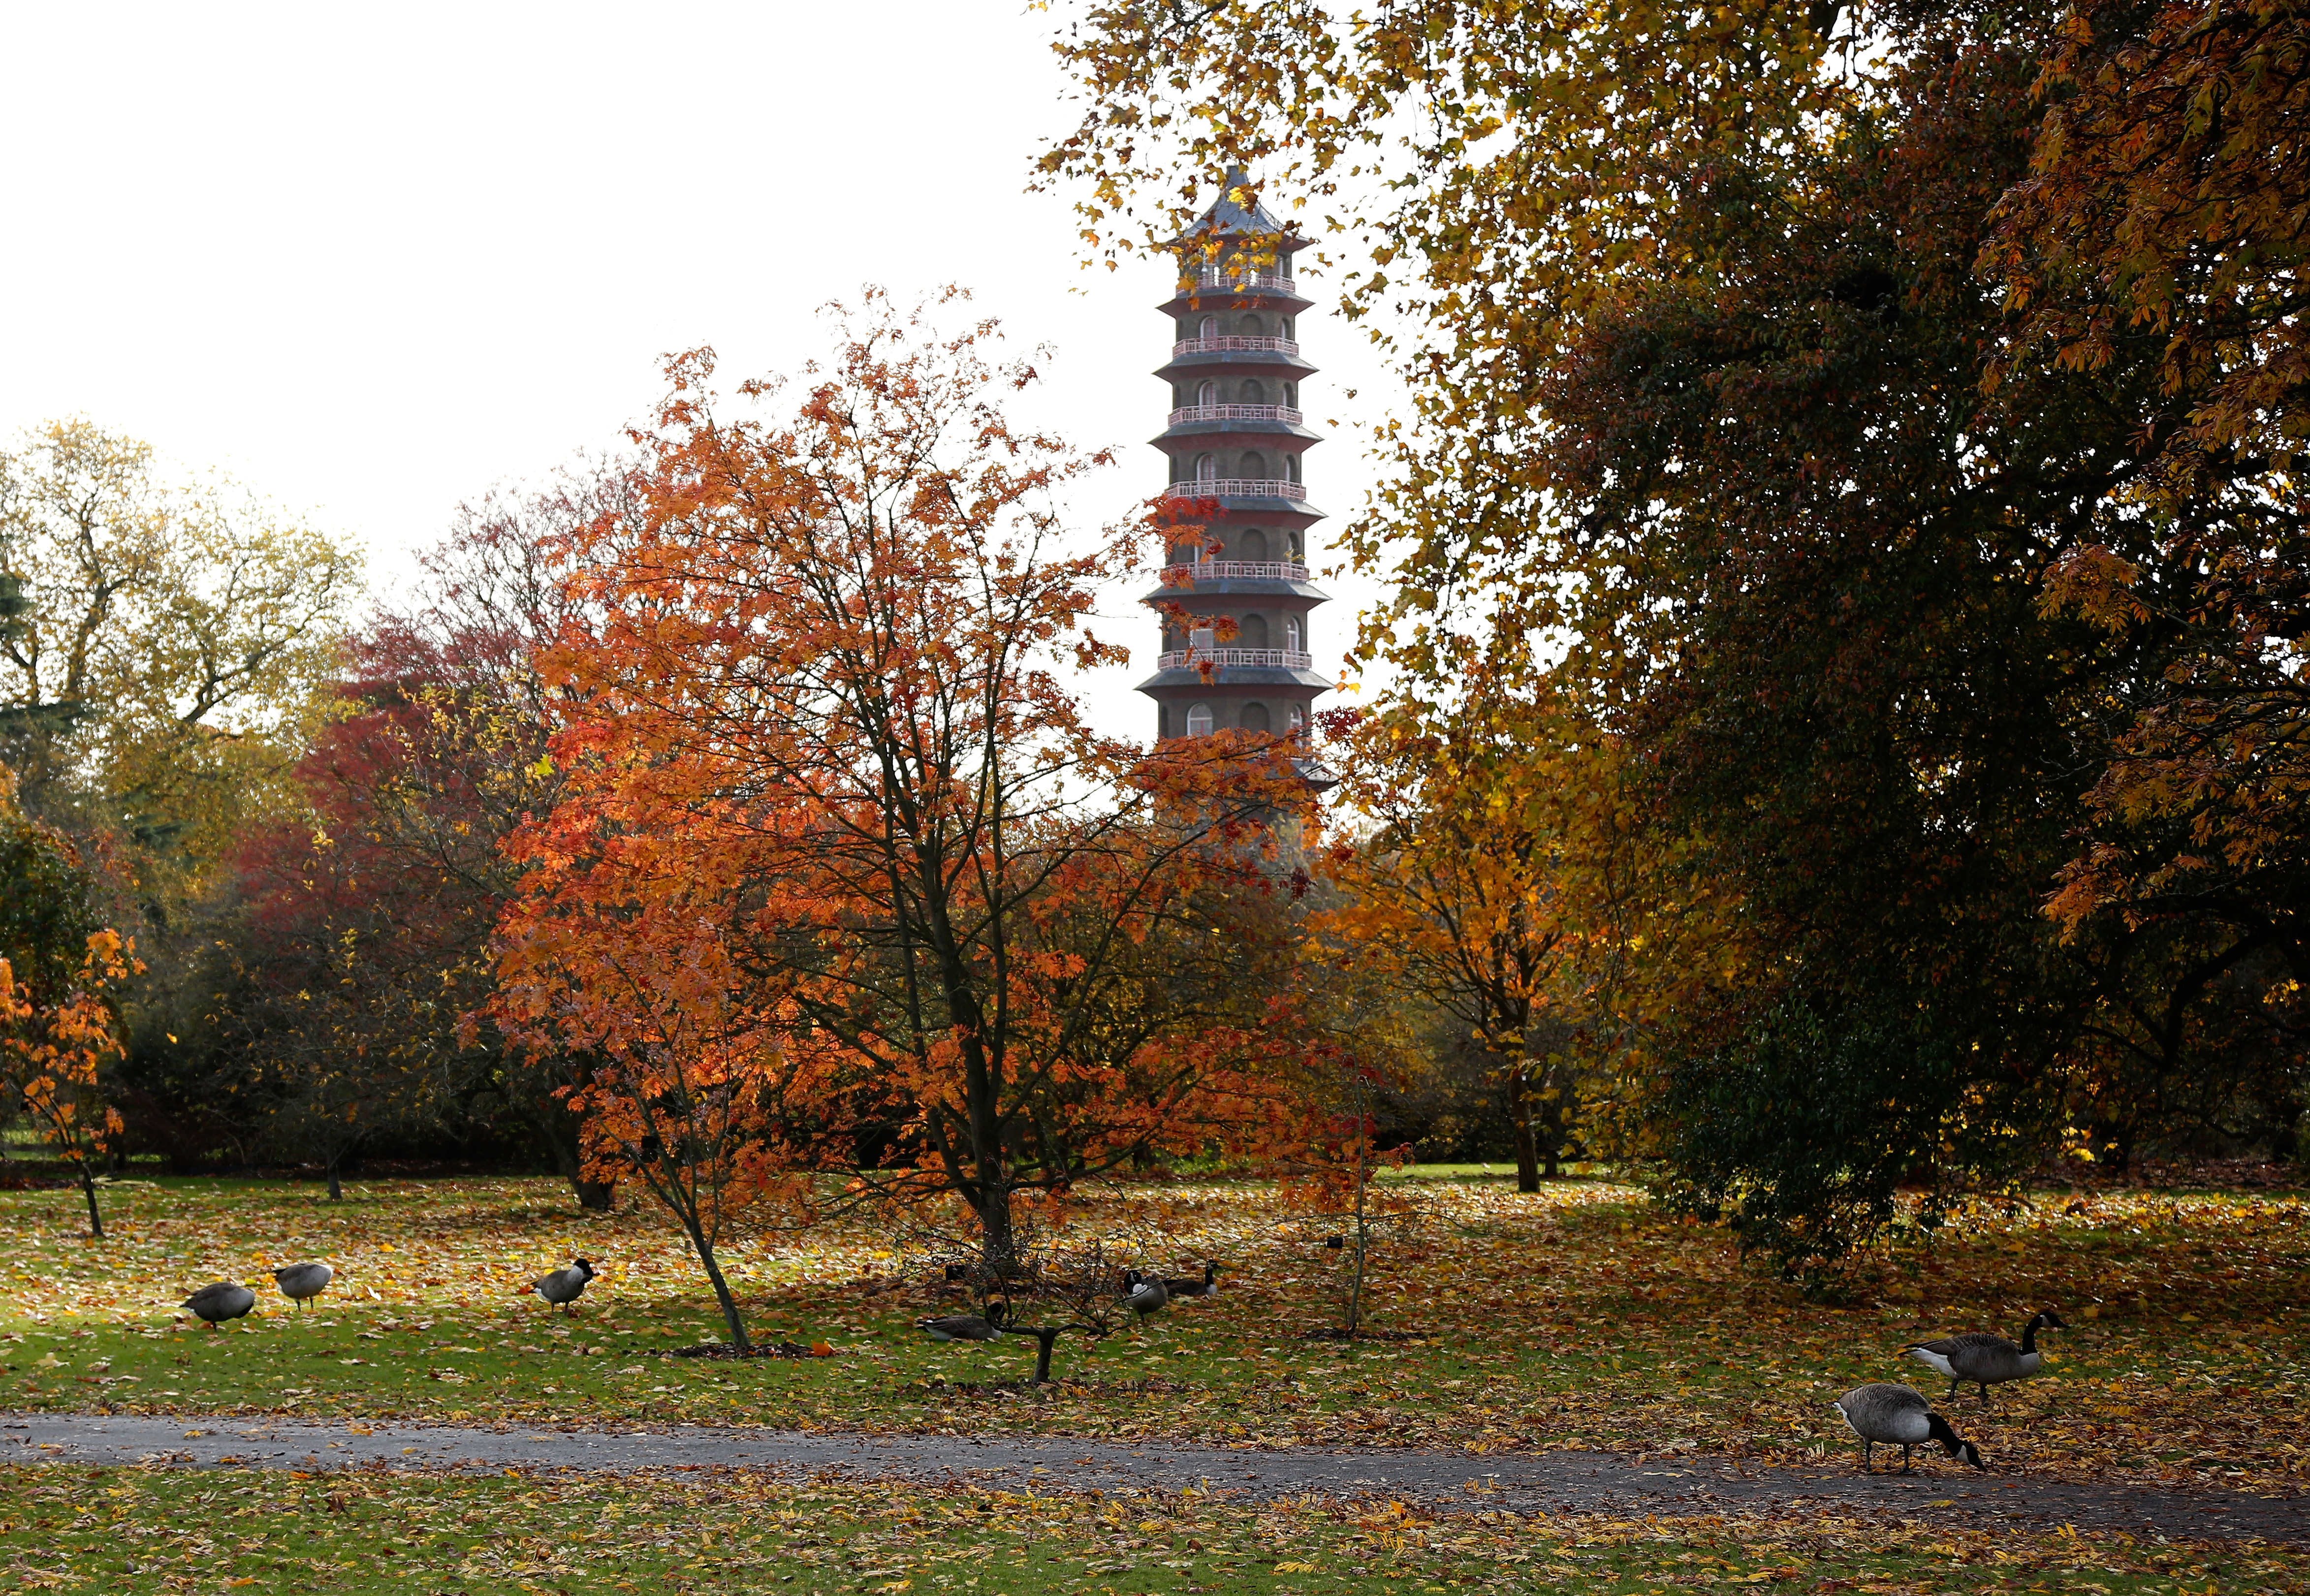 The Great Pagoda Through The Trees At Kew Gardens. Ben Perry/Getty Images